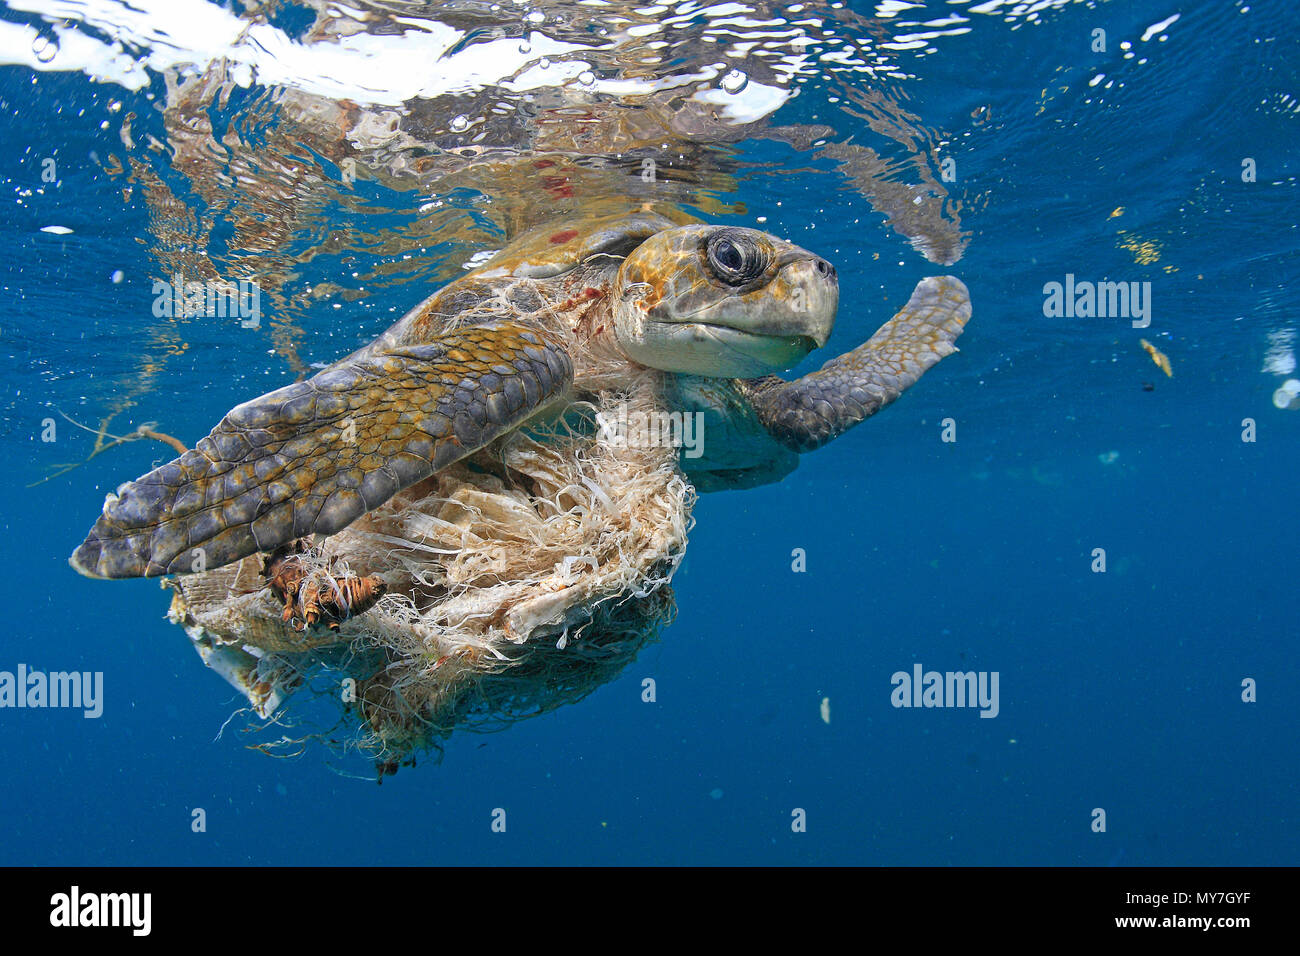 Olive ridley sea turtle (Lepidochelys olivacea) in water tangled in plastic waste, Ile de Contador, Panama - Stock Image